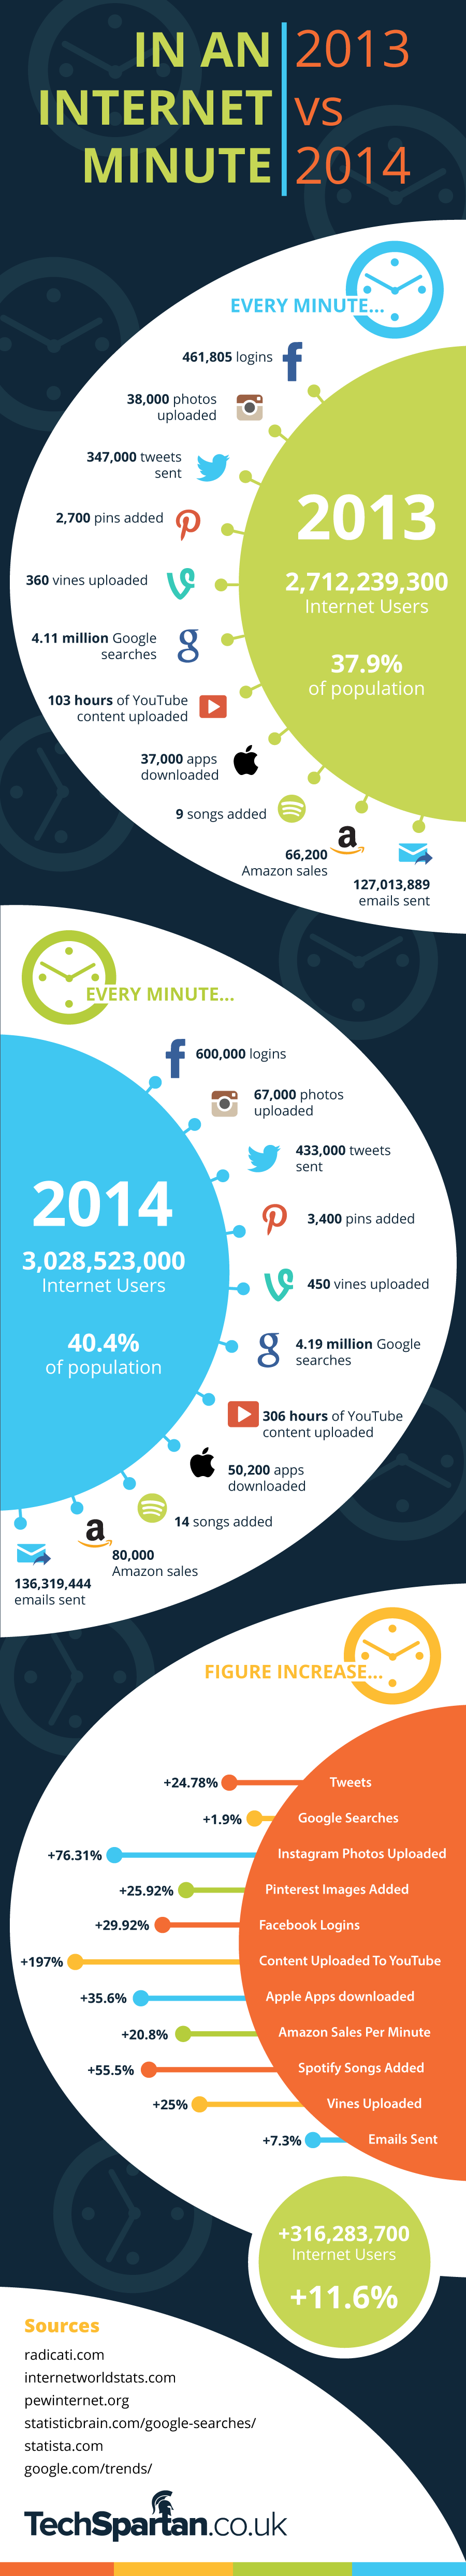 Facebook, Google, Twitter, Instagram, Vine, YouTube, Amazon, Email, Pinterest: #Internet In A Minute – 2013 VS 2014 #infographic